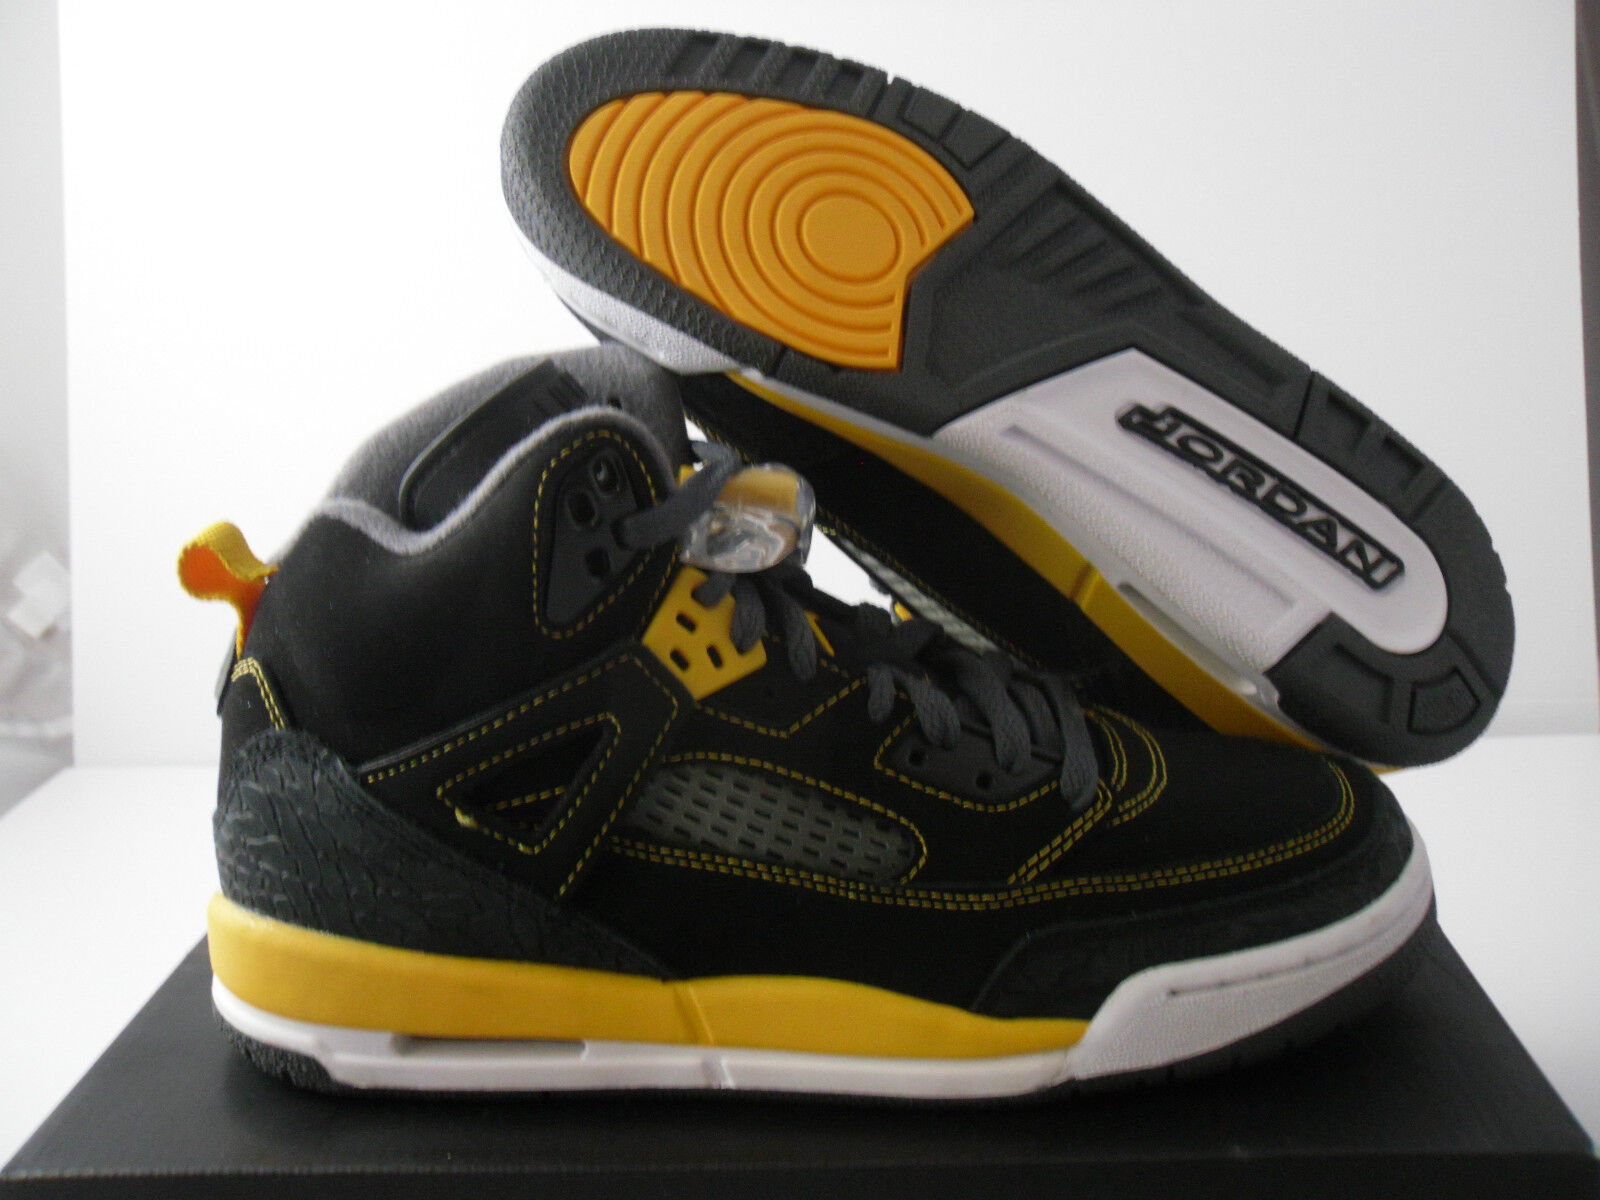 NIKE AIR JORDAN SPIZIKE (GS) BLACK-GOLD-GREY WMNS SZ 8 - SZ 6.5Y [317321-030]